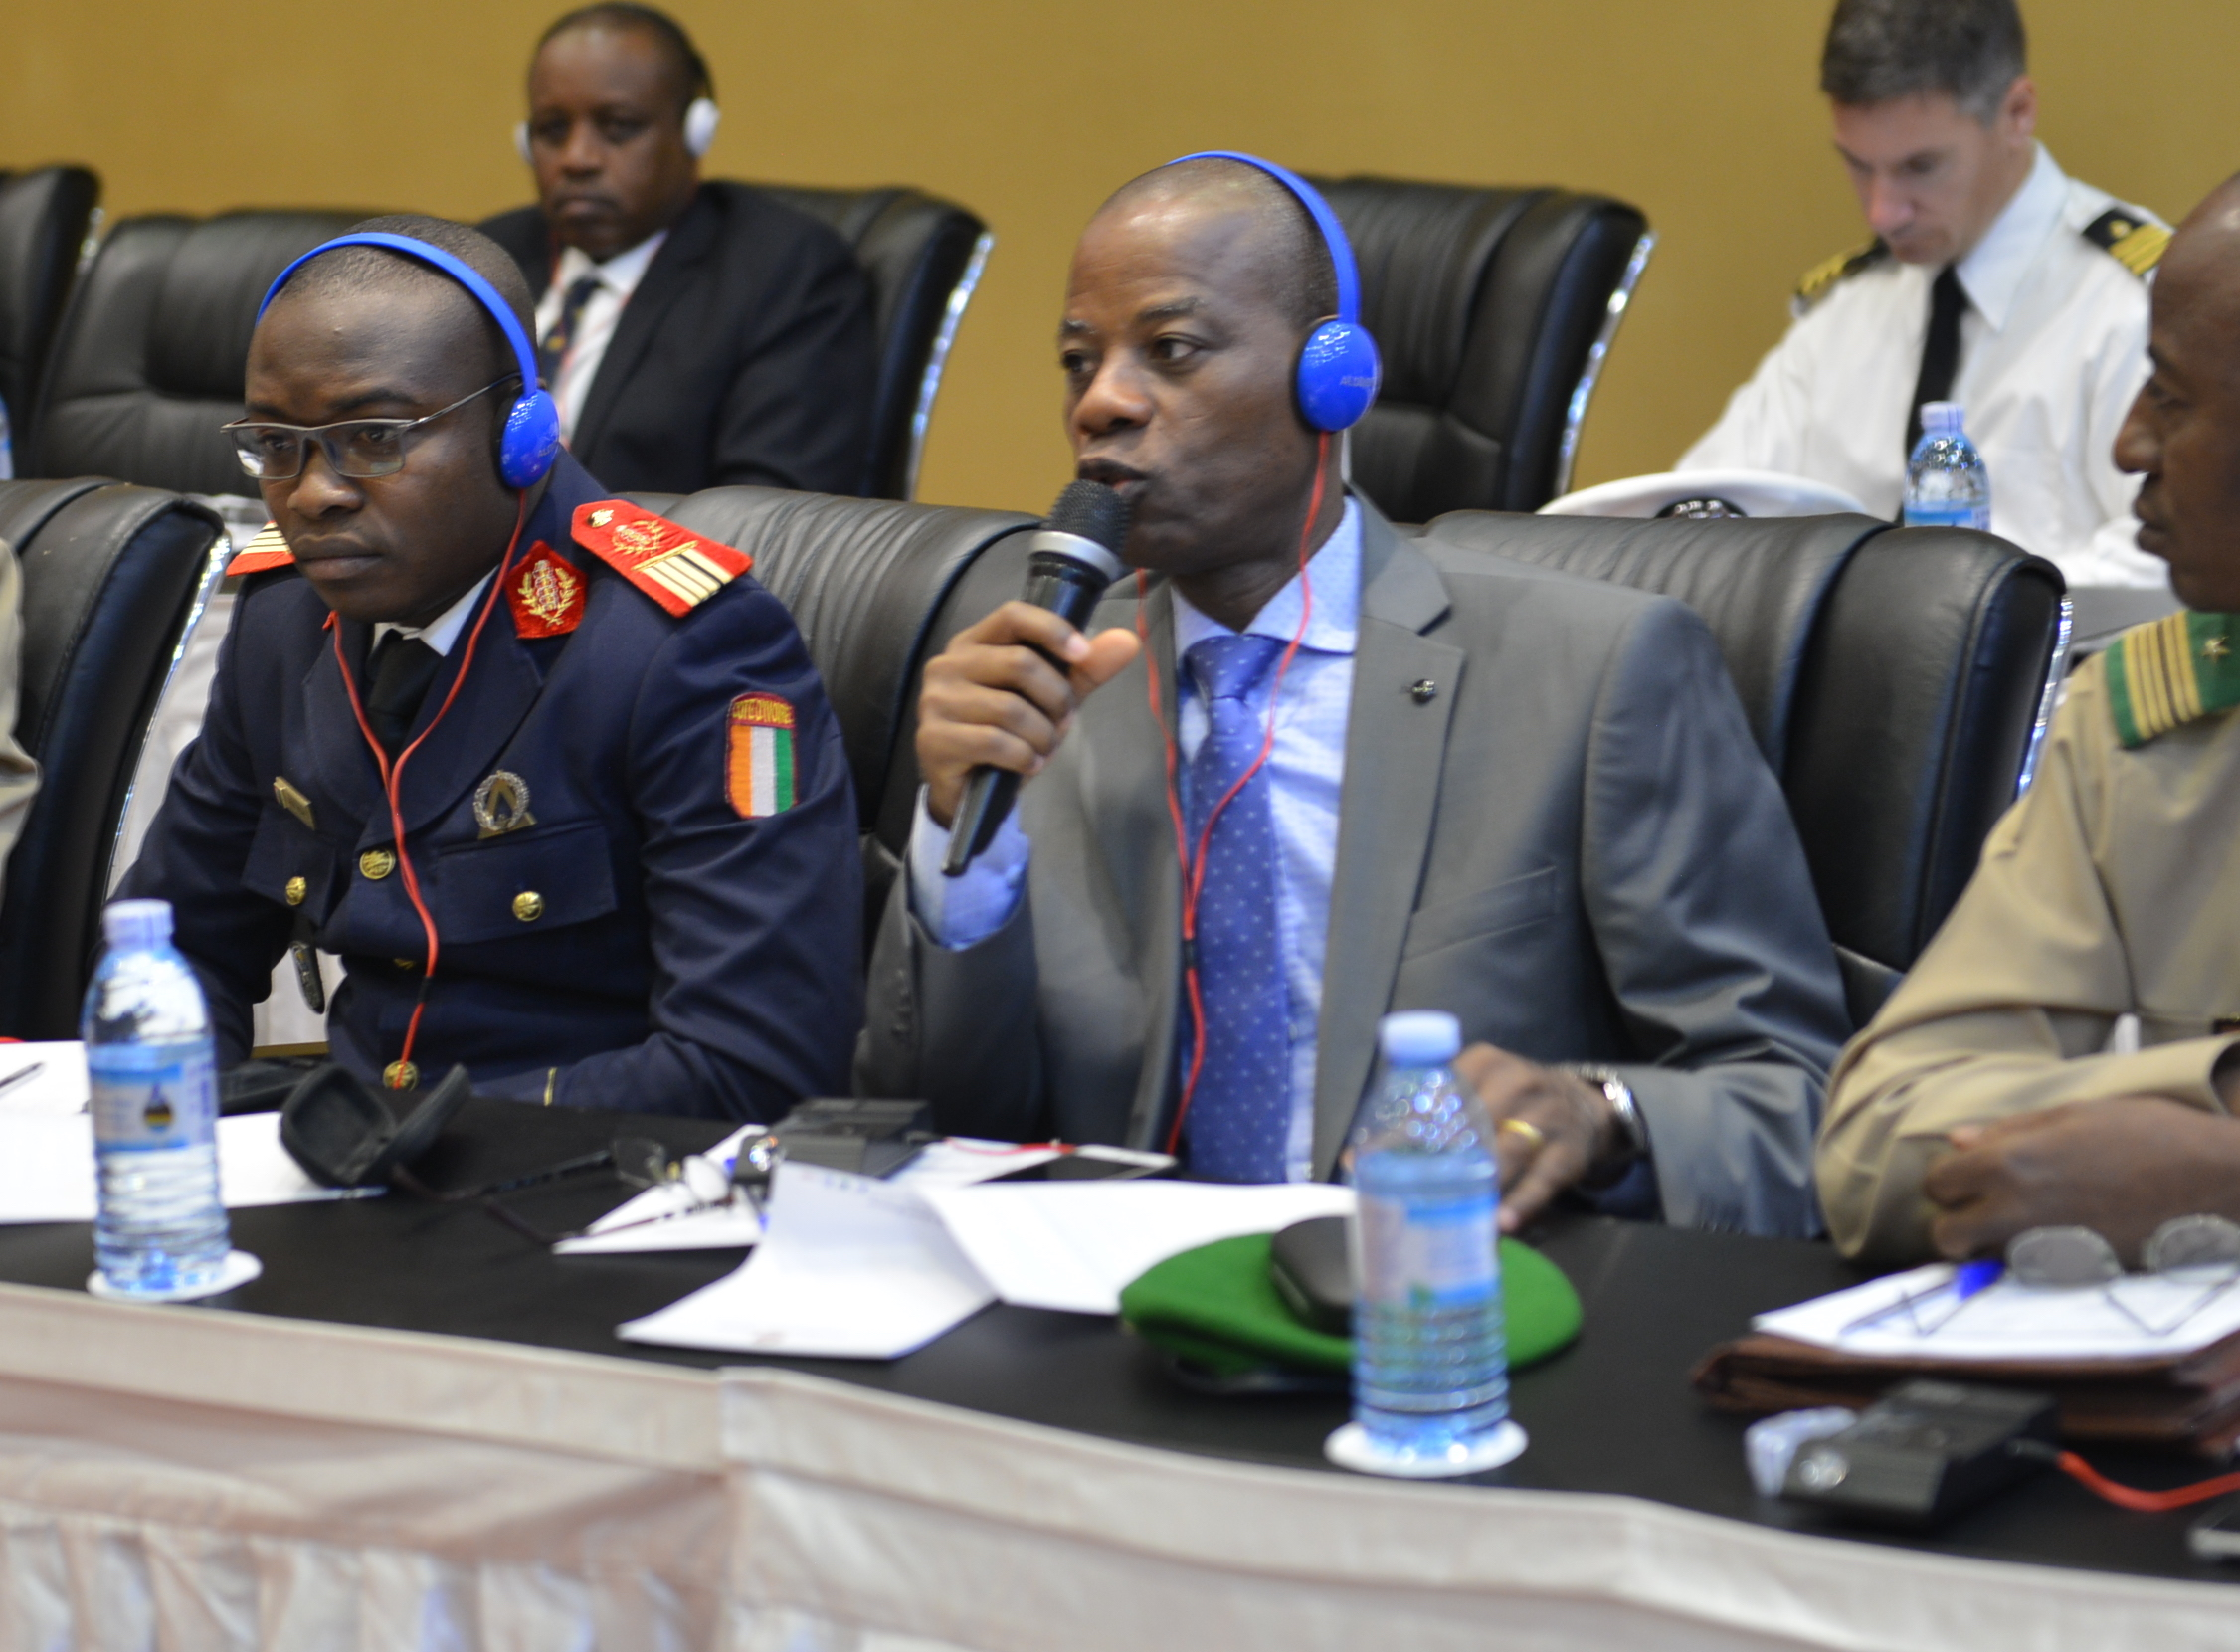 Brig. Gen. Dowlo Yao, Chief of Health Services, Cote D'Ivoire Armed Forces and Chairman of Africa Malaria Task Force, asks a question to during the AMTF Key Leader Event in Kampala, Uganda, March 25, 2019.